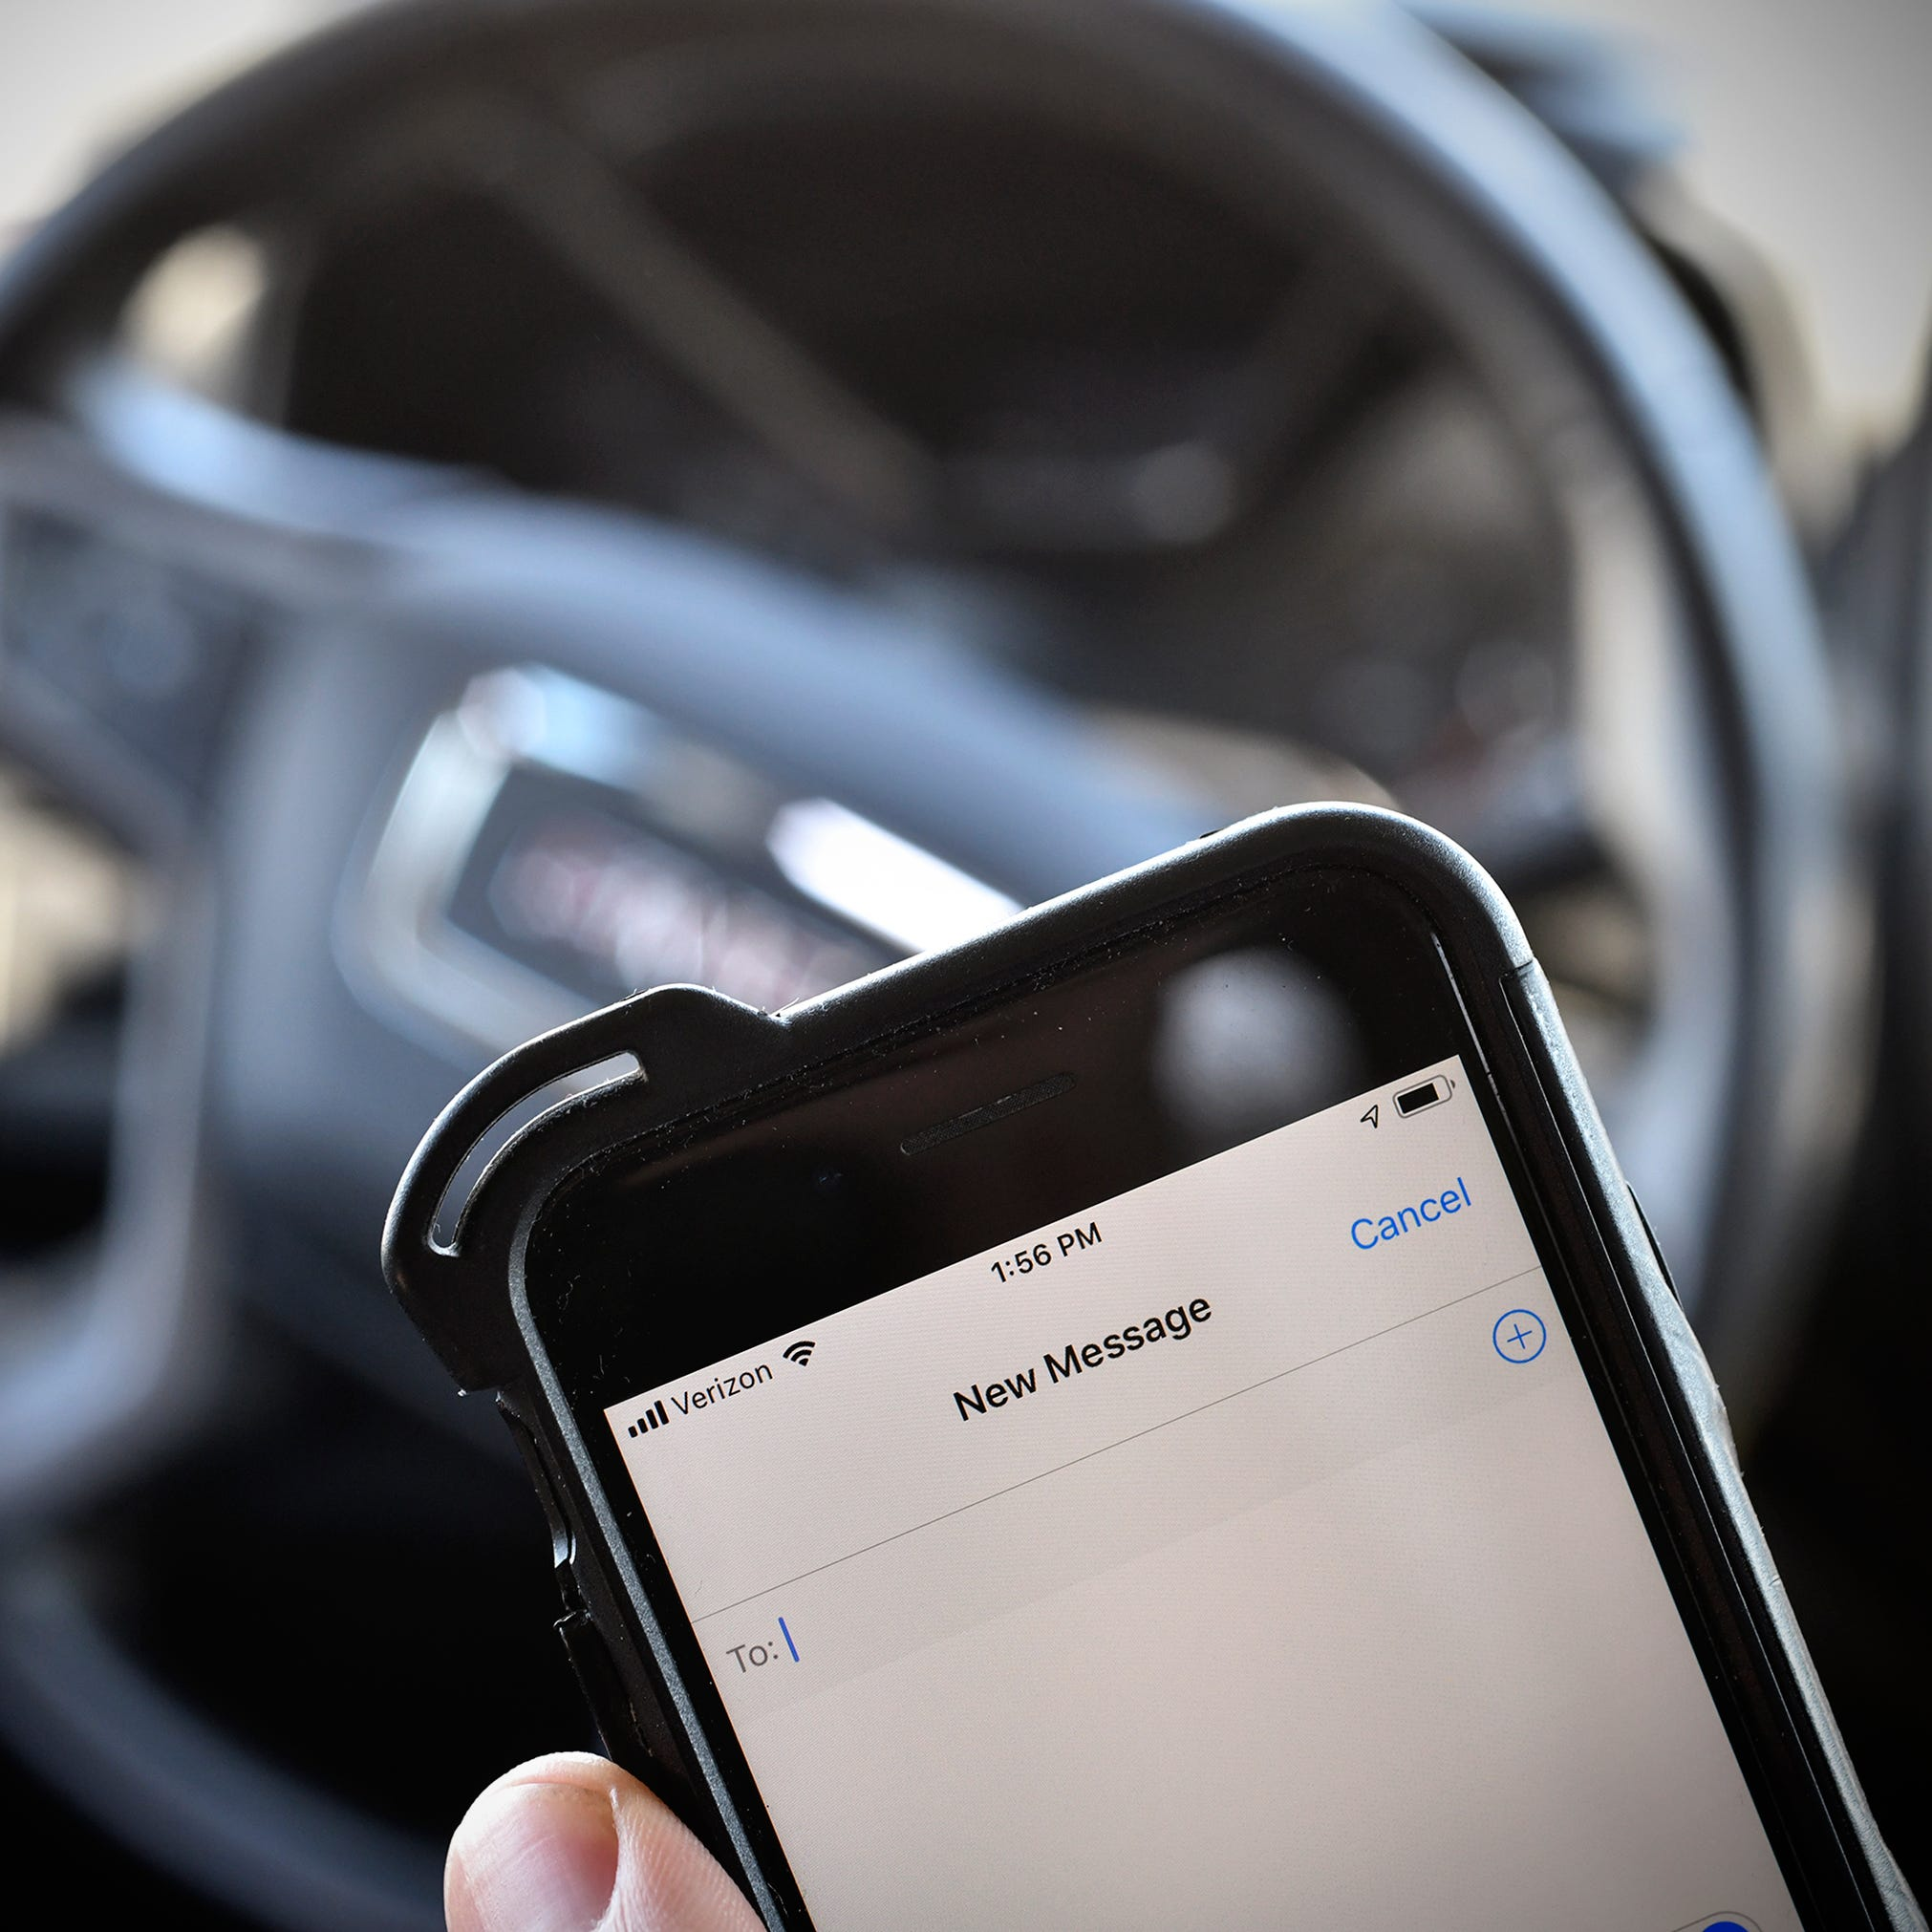 Texting-while-driving crackdown: Here are the 207 NJ police departments participating